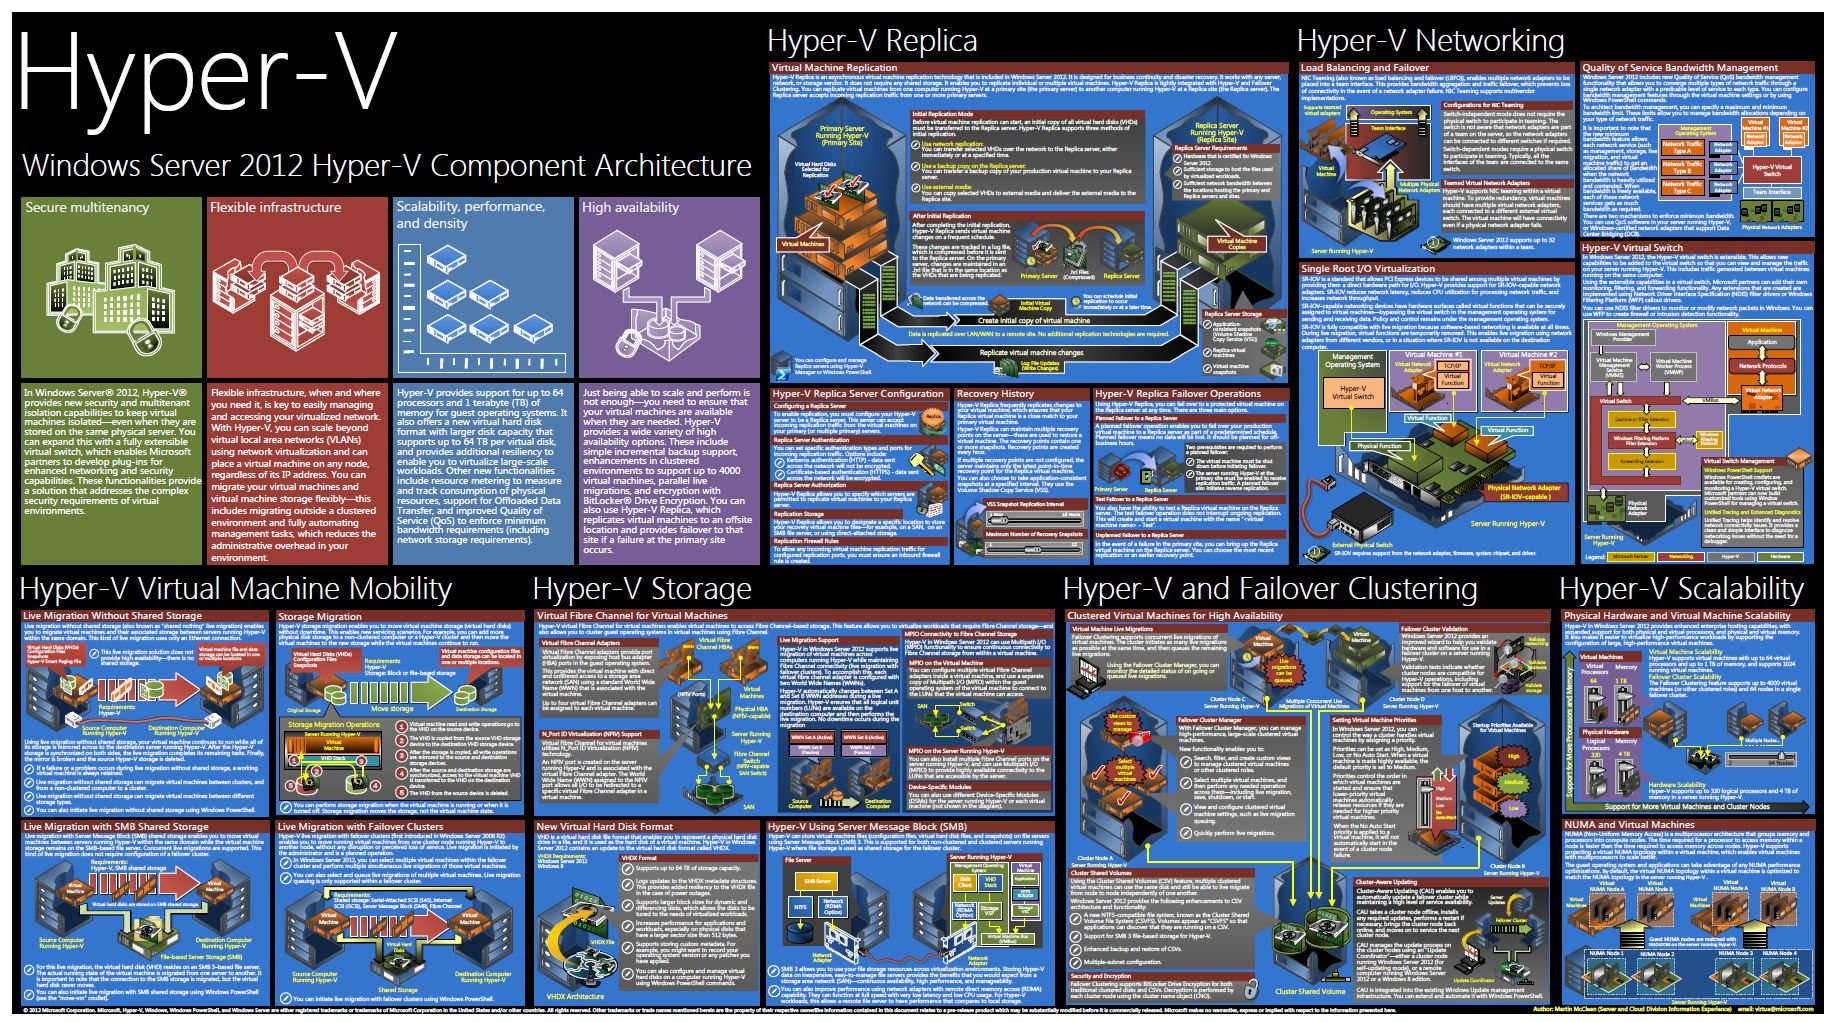 update windows server 2012 hyper v architecture poster